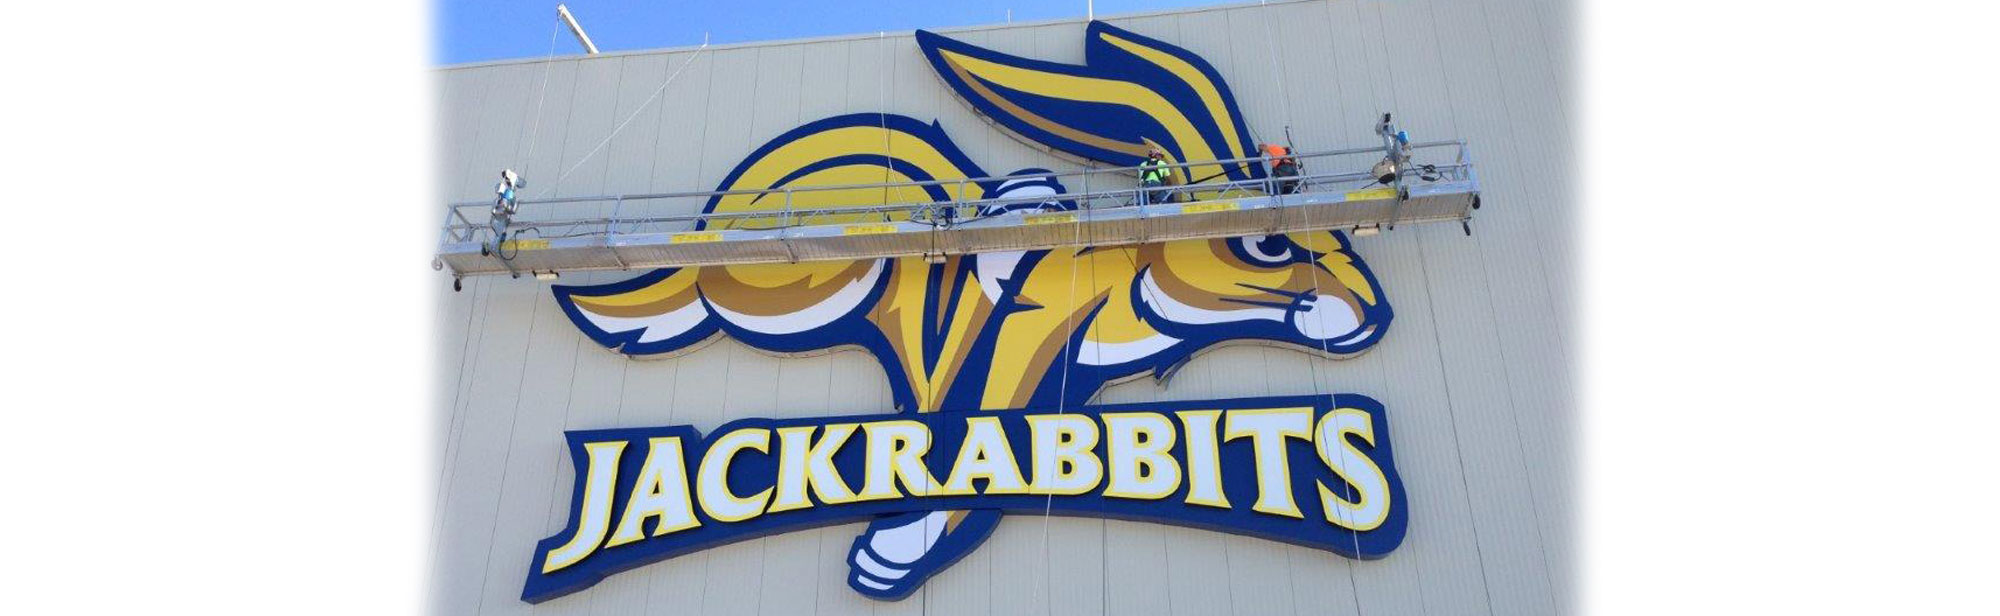 Jackrabbits Store Sign